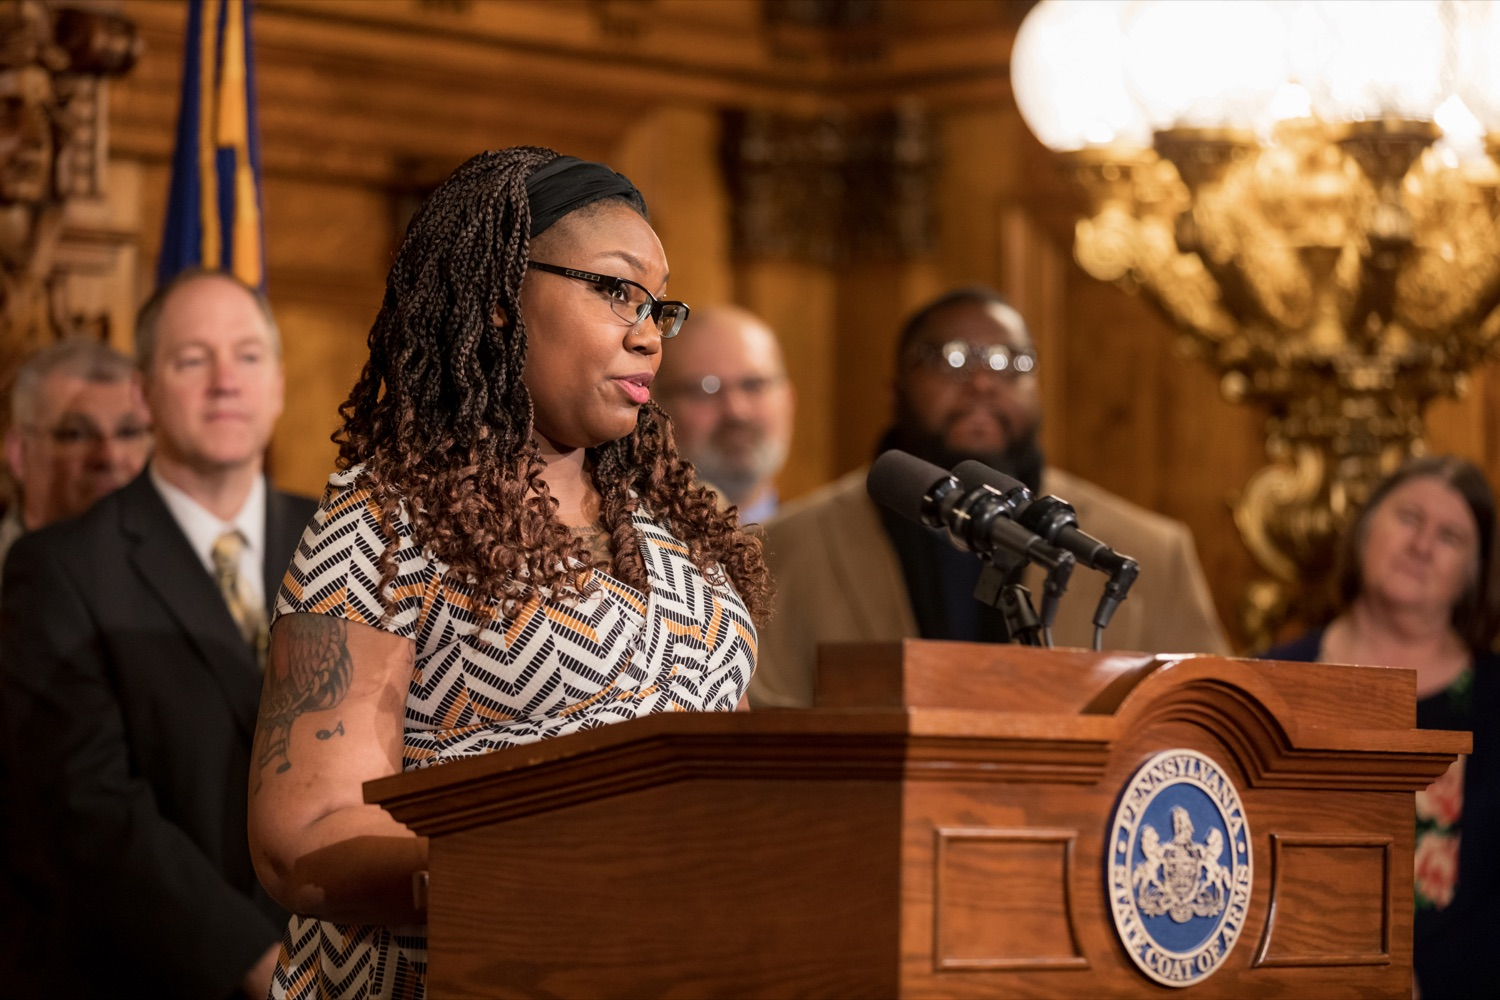 "<a href=""https://filesource.wostreaming.net/commonwealthofpa/photo/17694_GOV_Mental_Health_NK_010.JPG"" target=""_blank"">⇣ Download Photo<br></a>Tanisha Bowman speaks during a press conference inside the Governor's Reception Room at the State Capitol building in Harrisburg on Thursday, January 2, 2020. Governor Wolf announced a focused all-agency effort and anti-stigma campaign, Reach Out PA: Your Mental Health Matters, aimed at expanding resources and the states comprehensive support of mental health and related health care priorities in Pennsylvania."